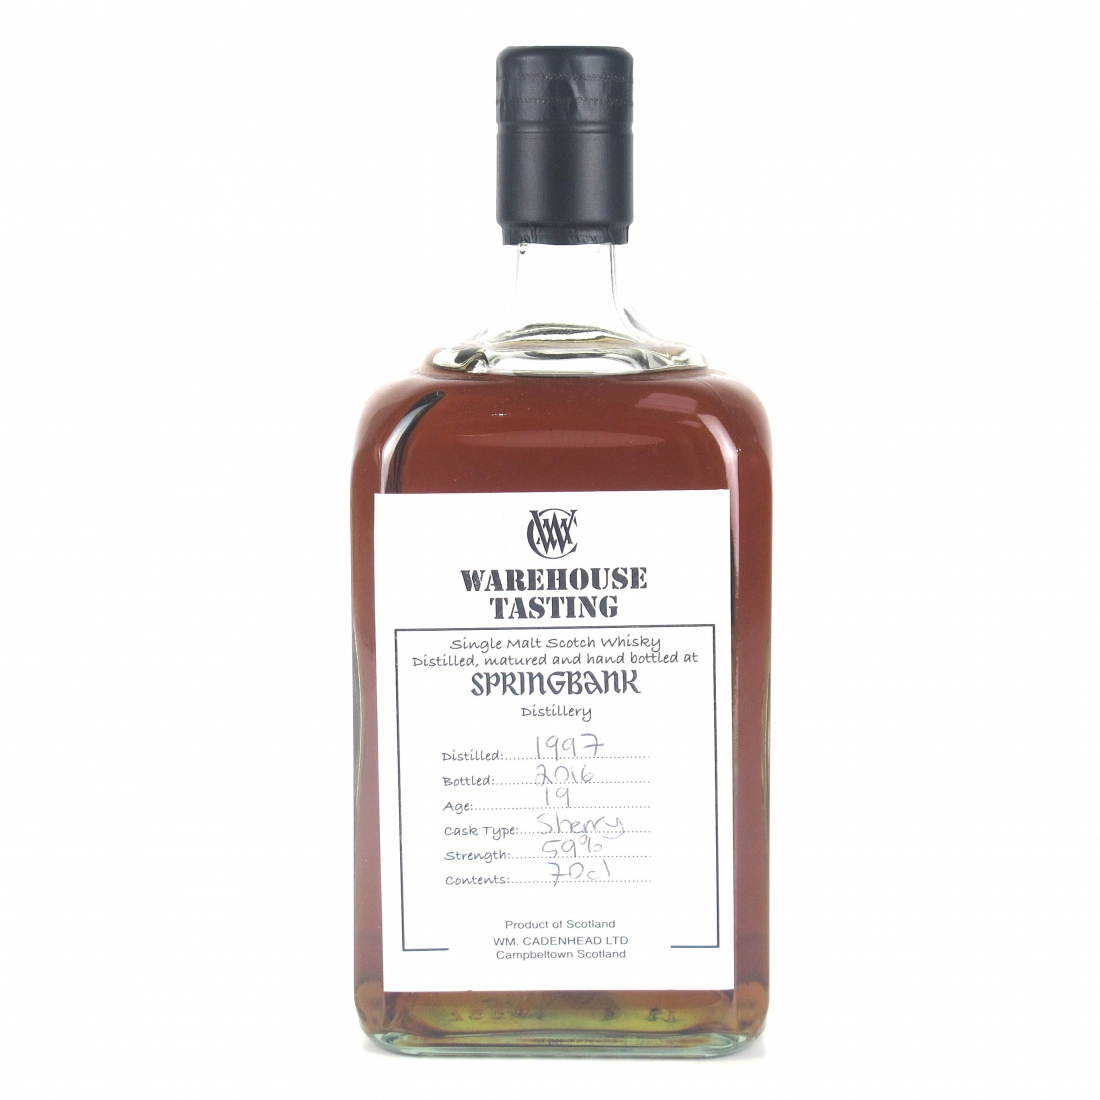 Springbank 1997 Sherry Wood Warehouse Tasting